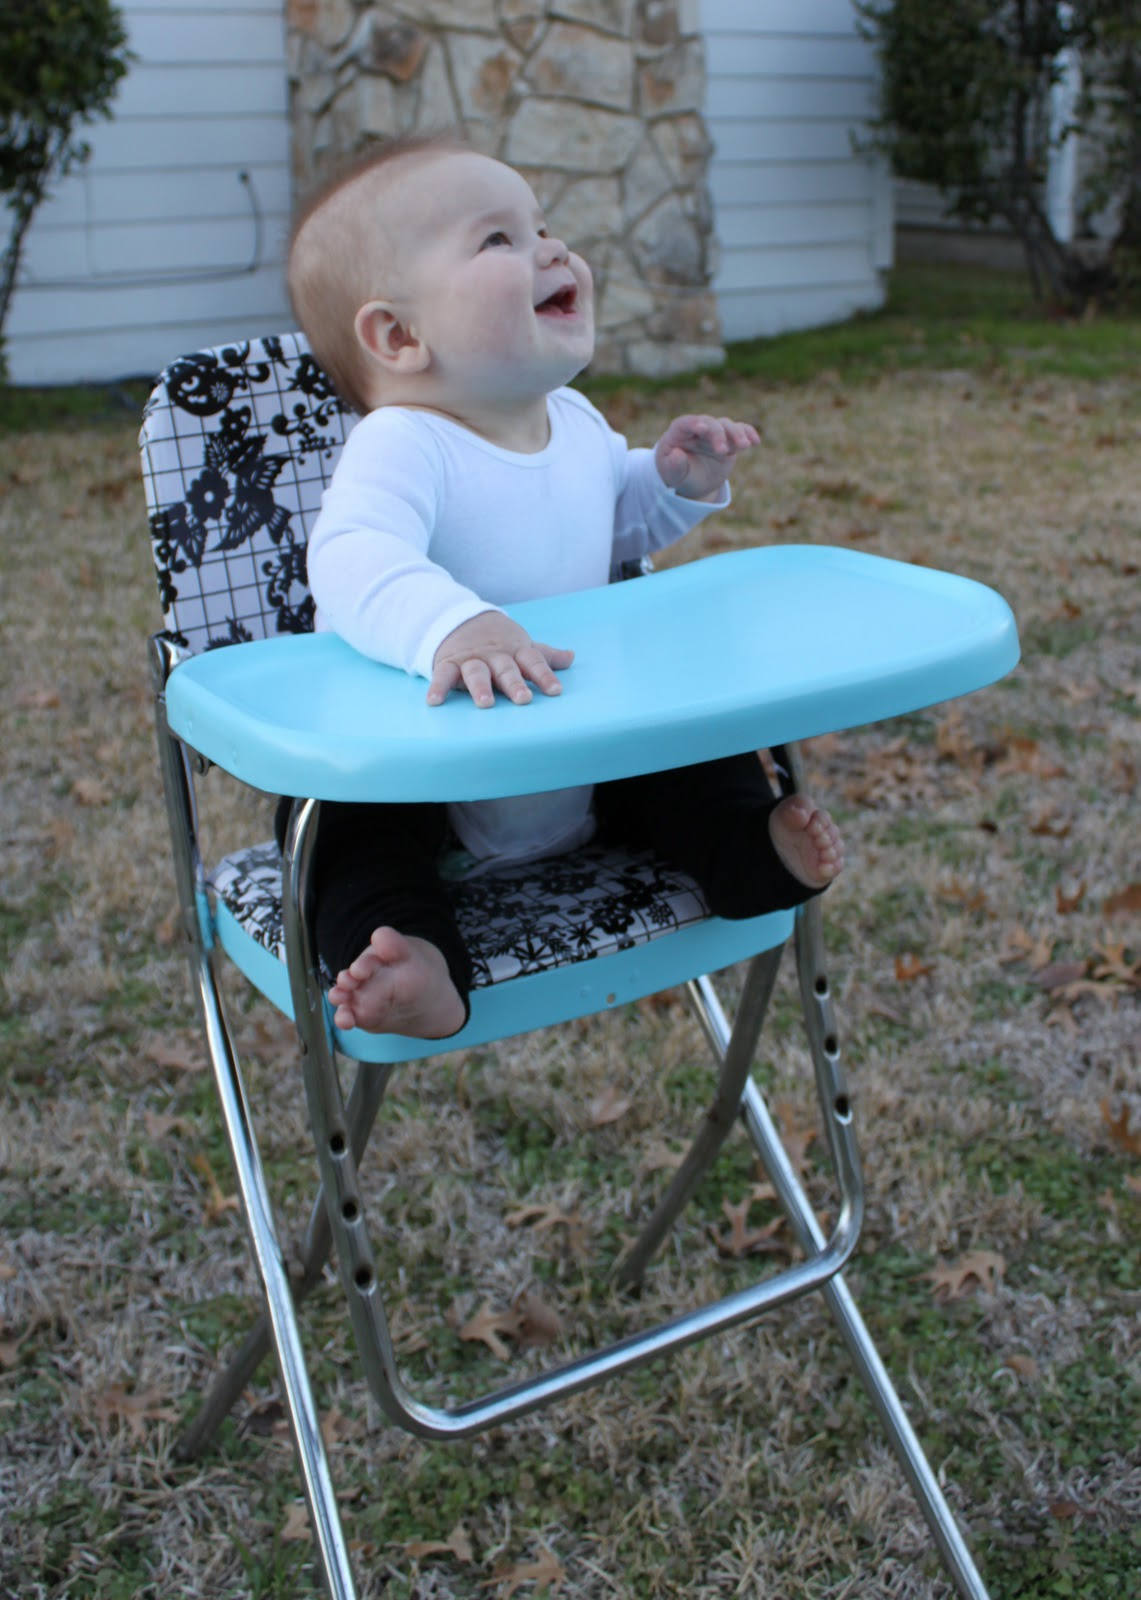 Antique metal high chair - I Love Using Vintage Pieces Because They Are Often So Much Higher Quality Than Plastic Crap From Target We Love Target And Have Our Share Of Plastic Baby